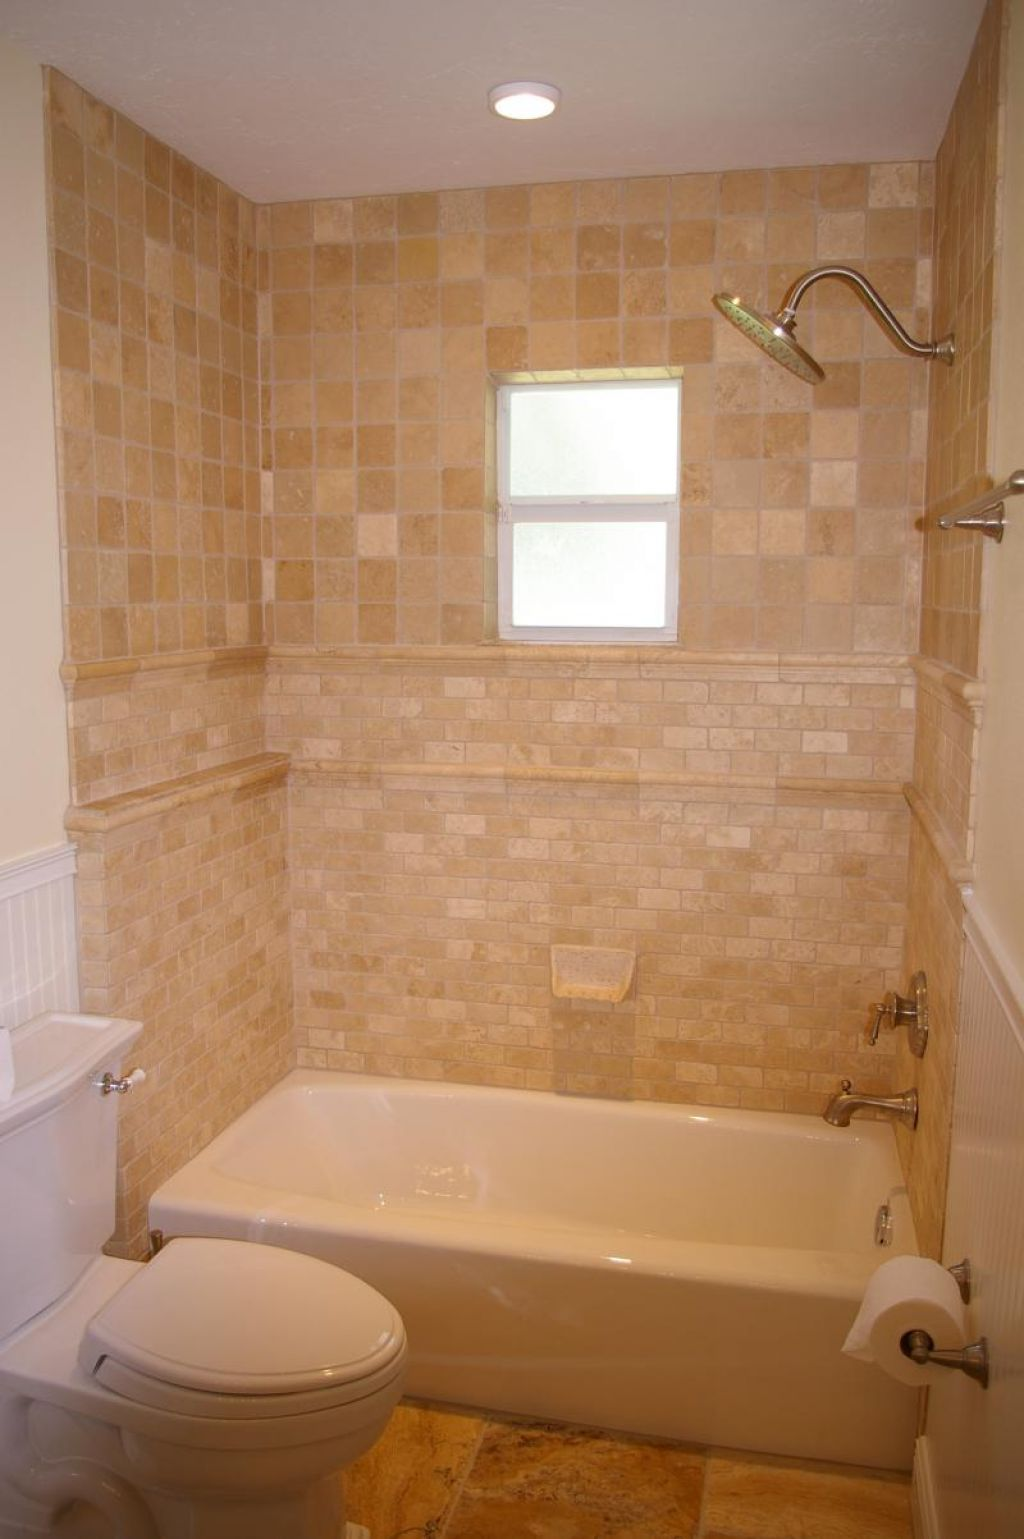 30 shower tile ideas on a budget for Small bathroom